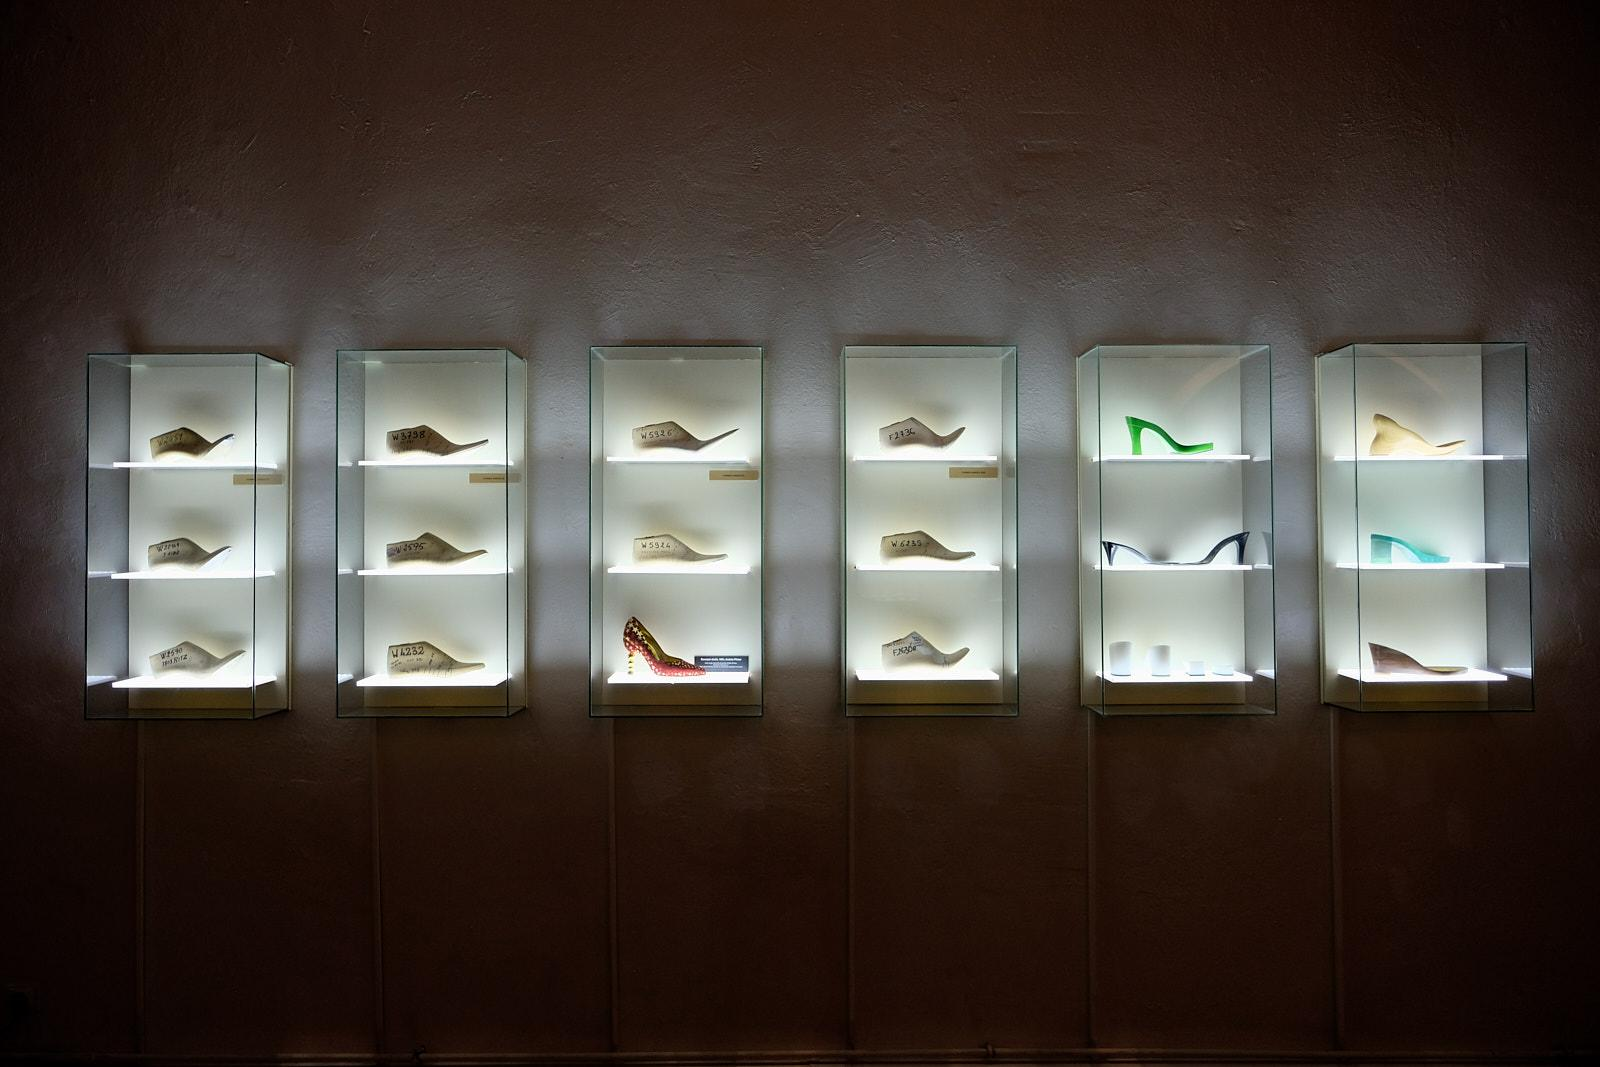 A window with different shapes of shoes in the Musee de la Chaussure in Romans